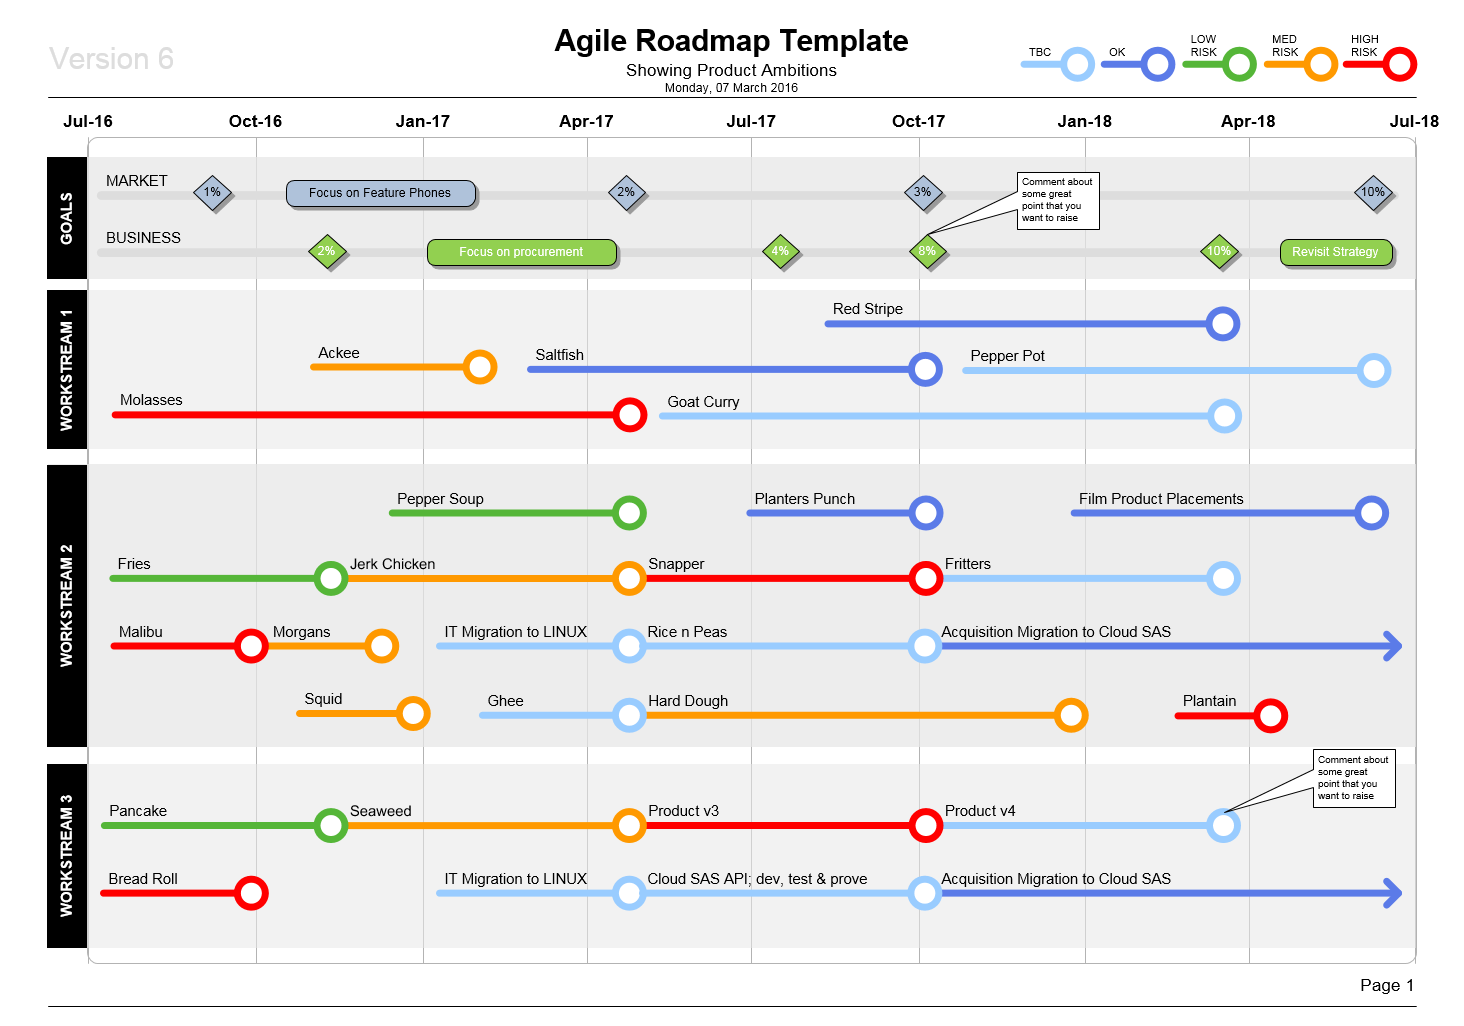 This Stylish Visio Agile Roadmap Shows Your Product Plans Over Time